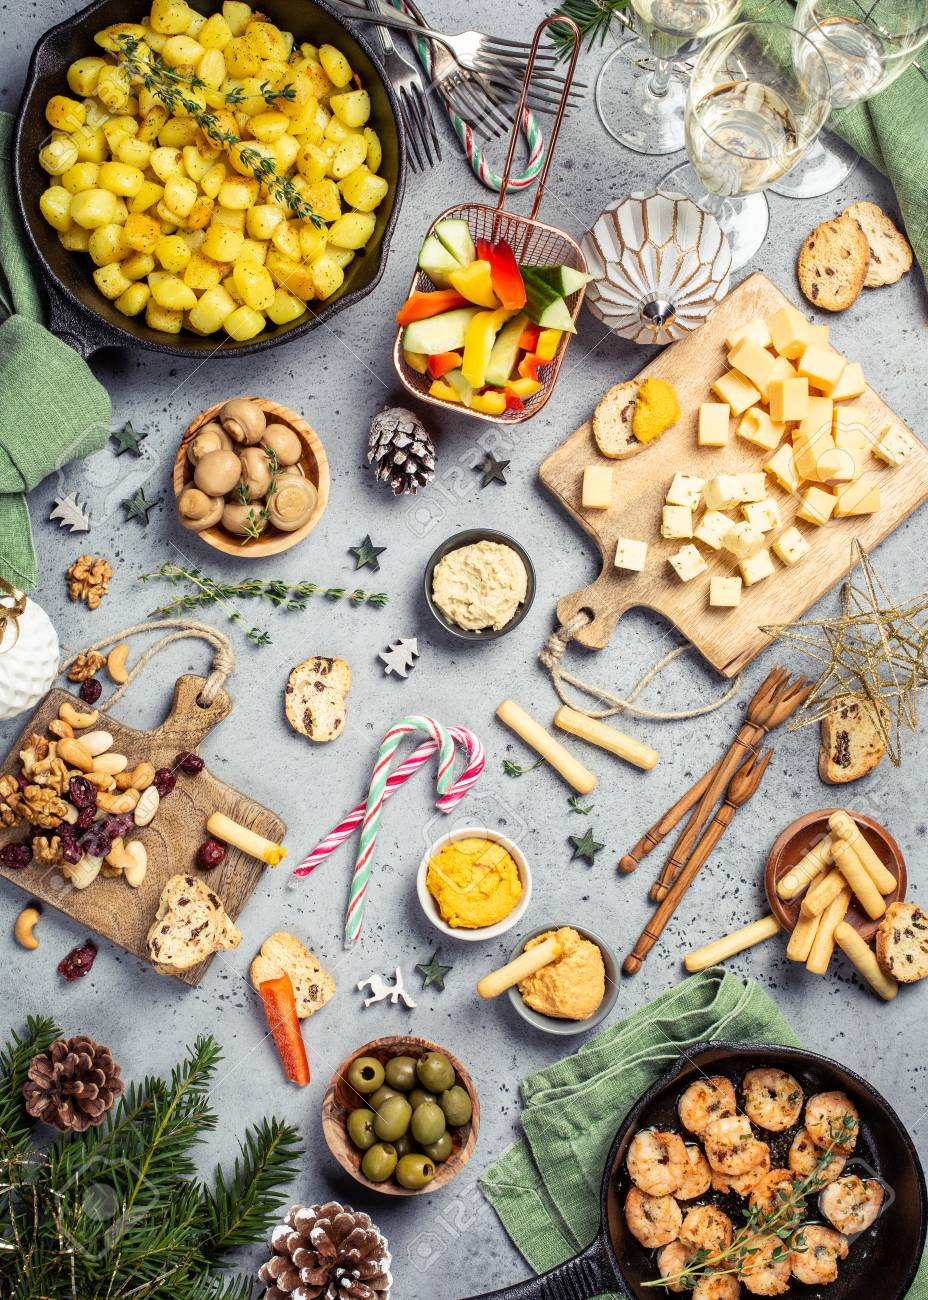 Christmas Dinner Party.Christmas Dinner Party Table Holiday Vegeterian Food Concept